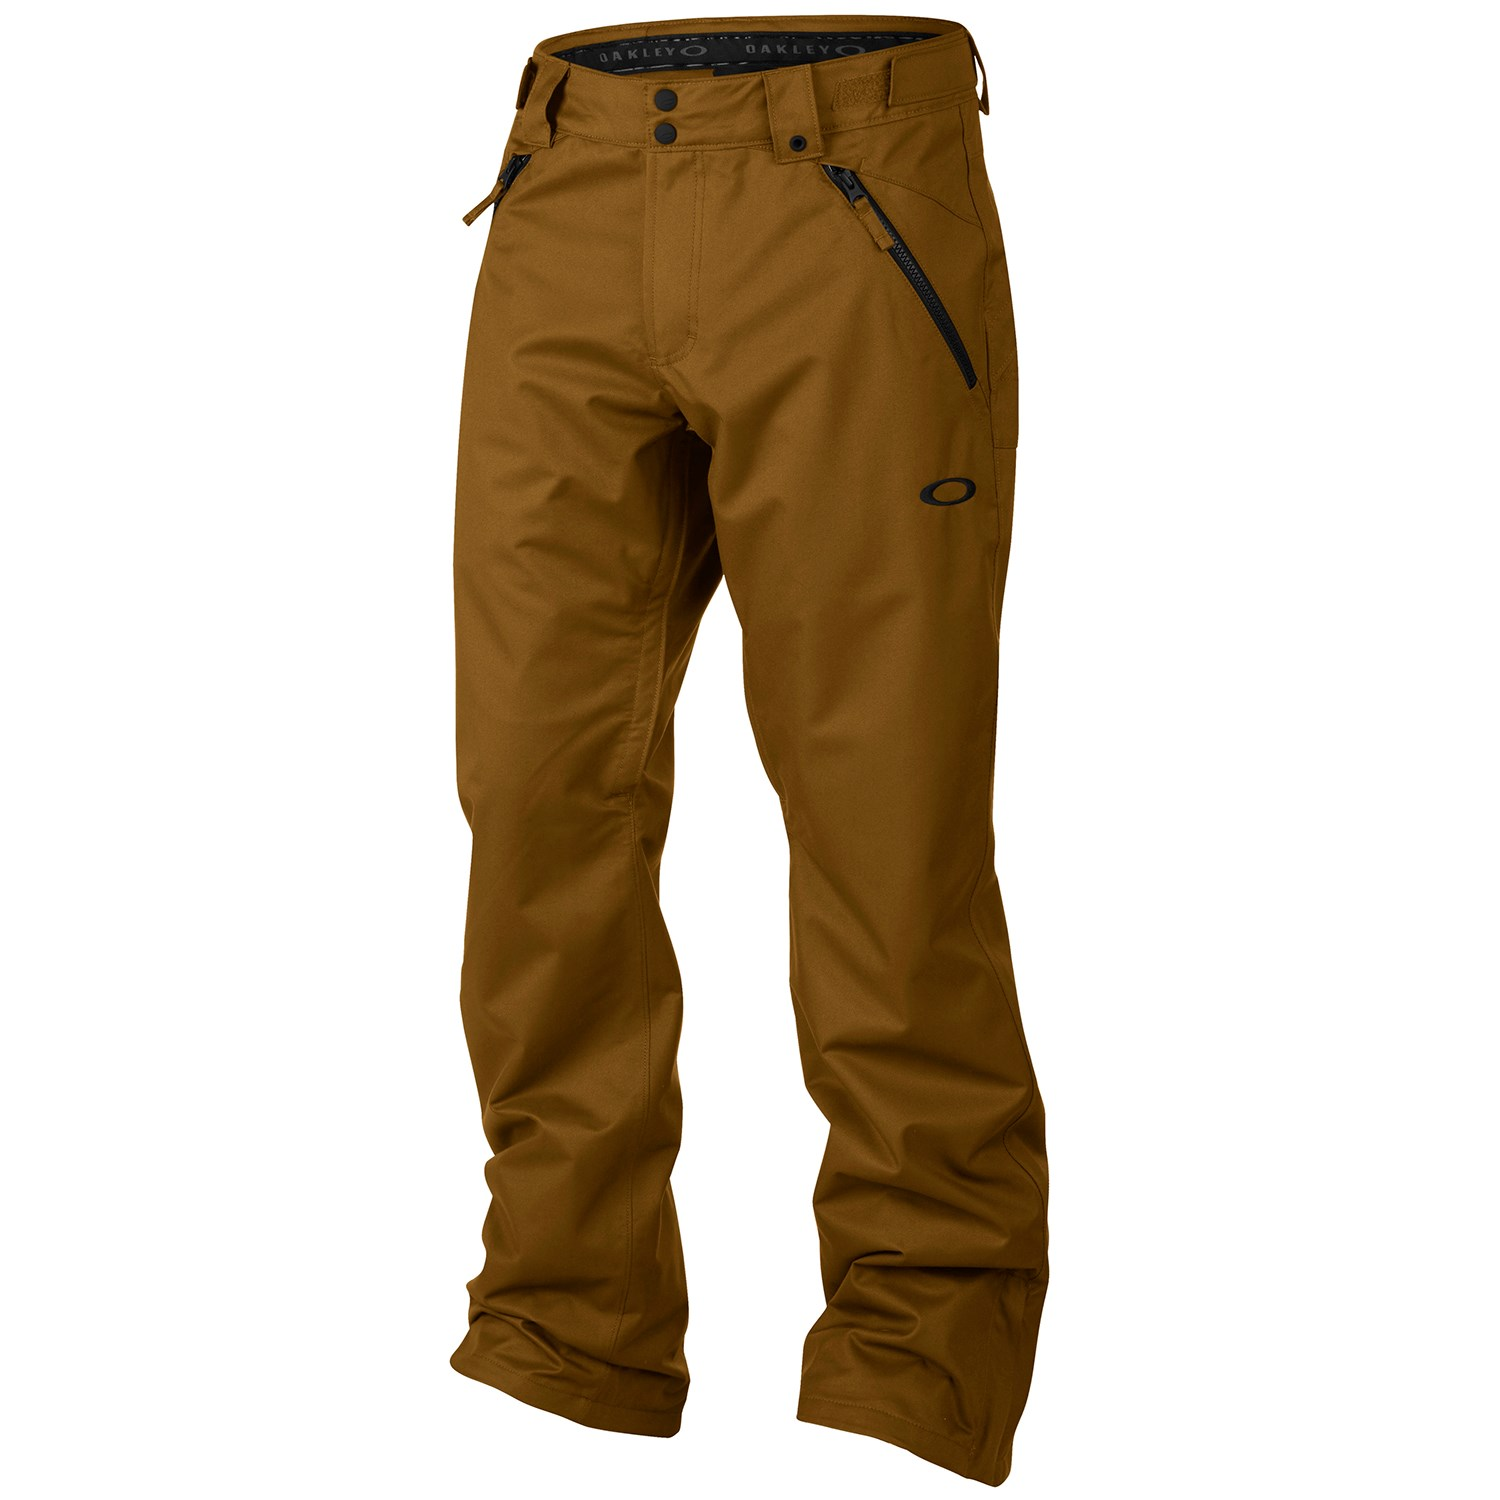 oakley ski pants on sale  oakley jackpot 2 biozone pants burnished